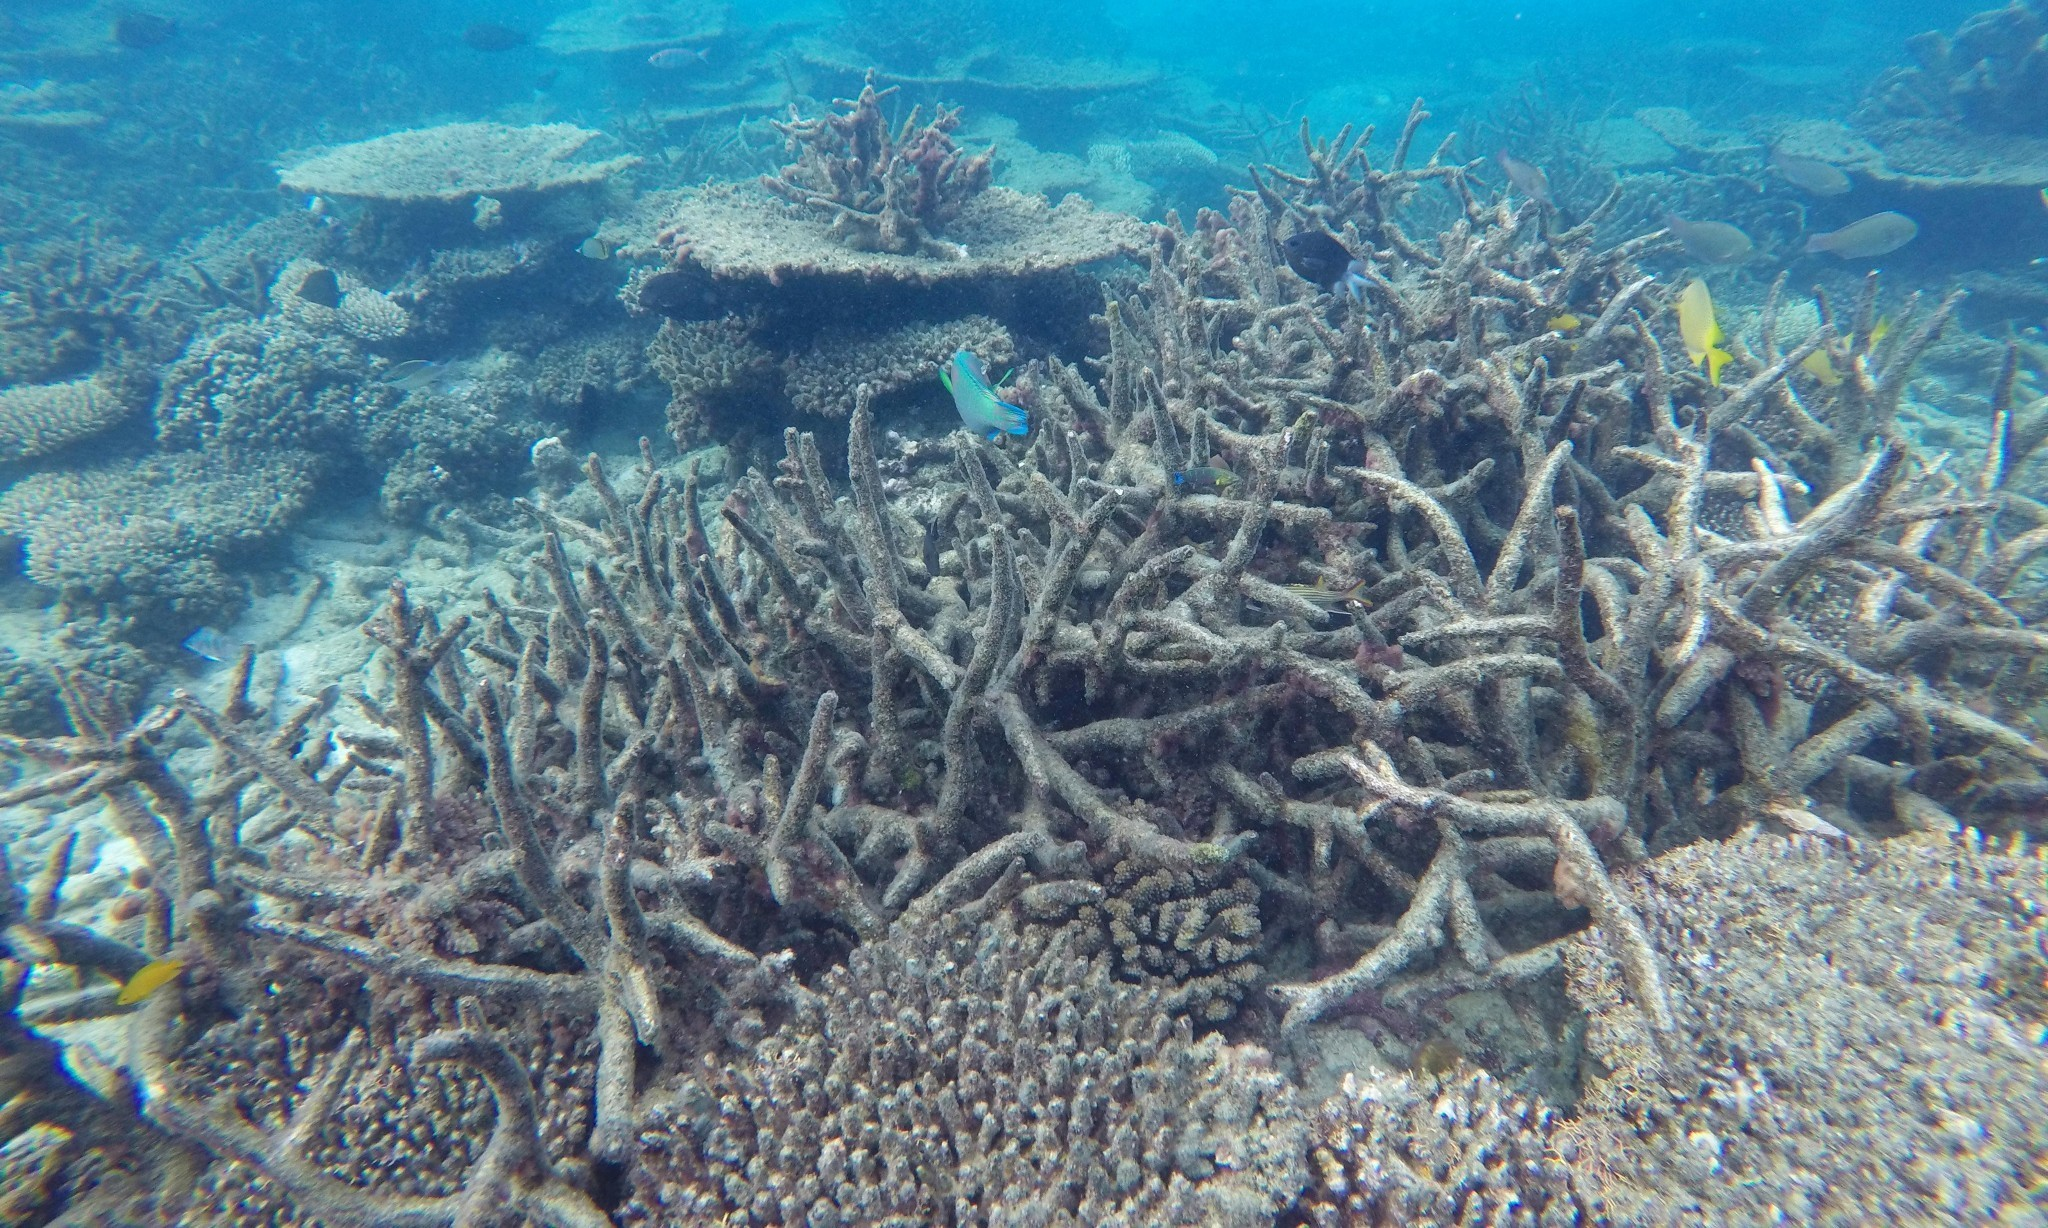 Coral bleaching on Great Barrier Reef worse than expected, surveys show